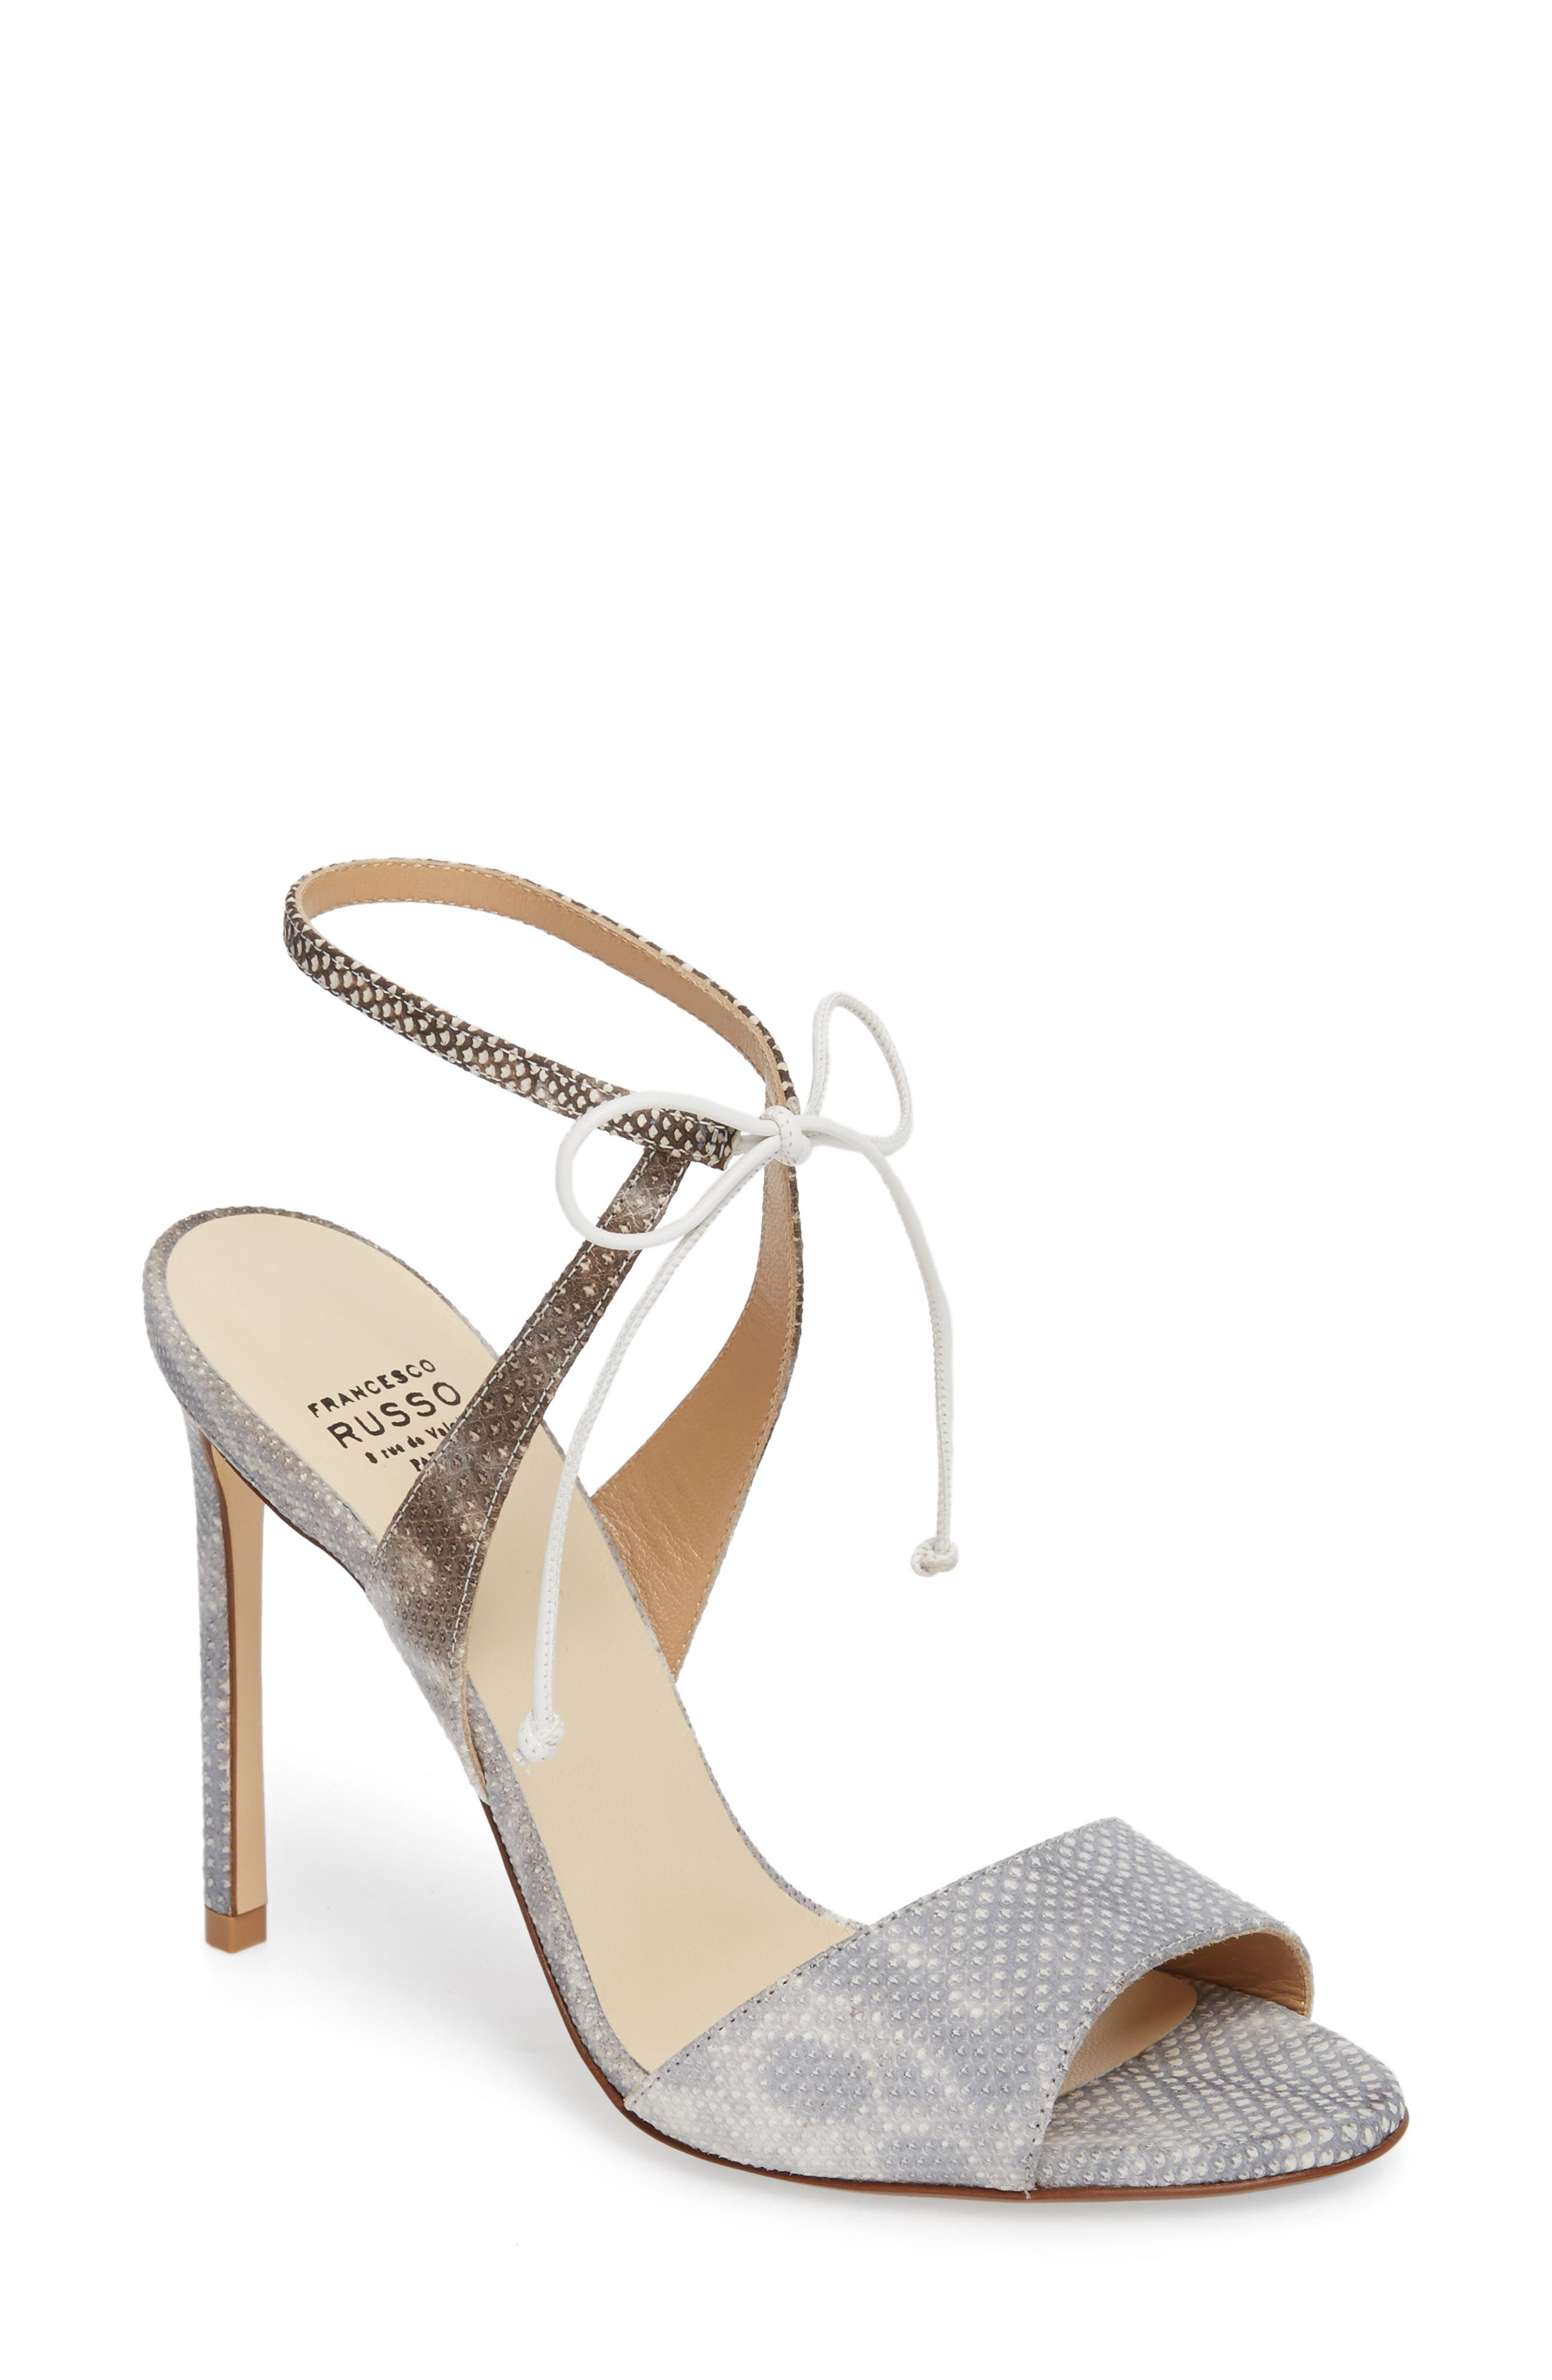 Ankle Strap Sandal,                         Main,                         color, White